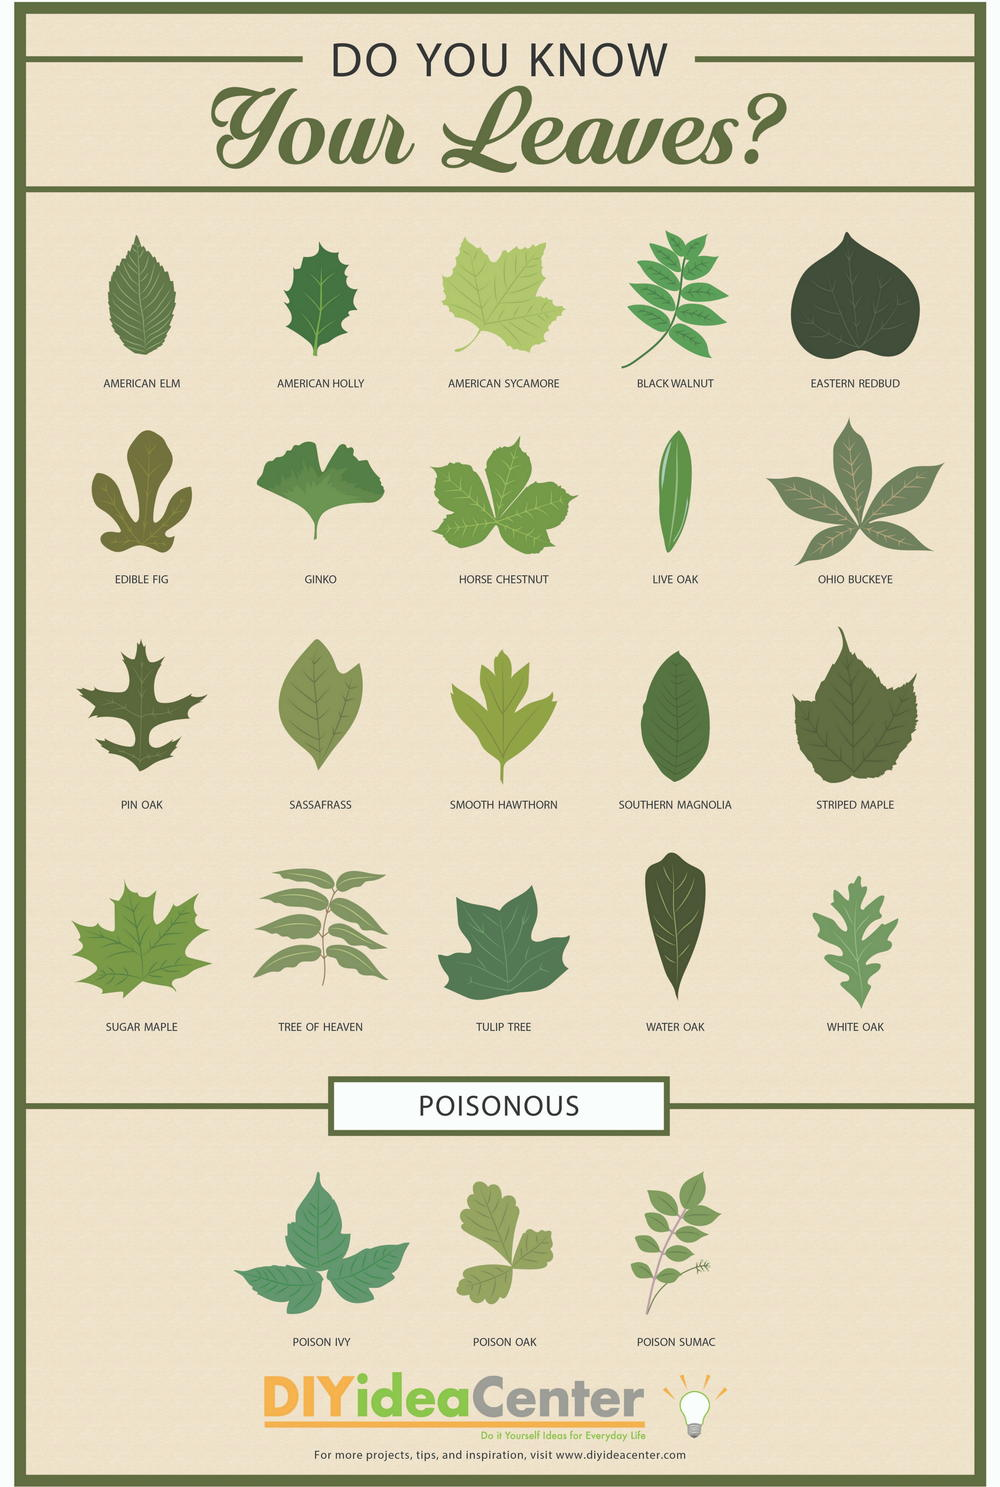 Leaf Identification Guide DIYIdeaCentercom